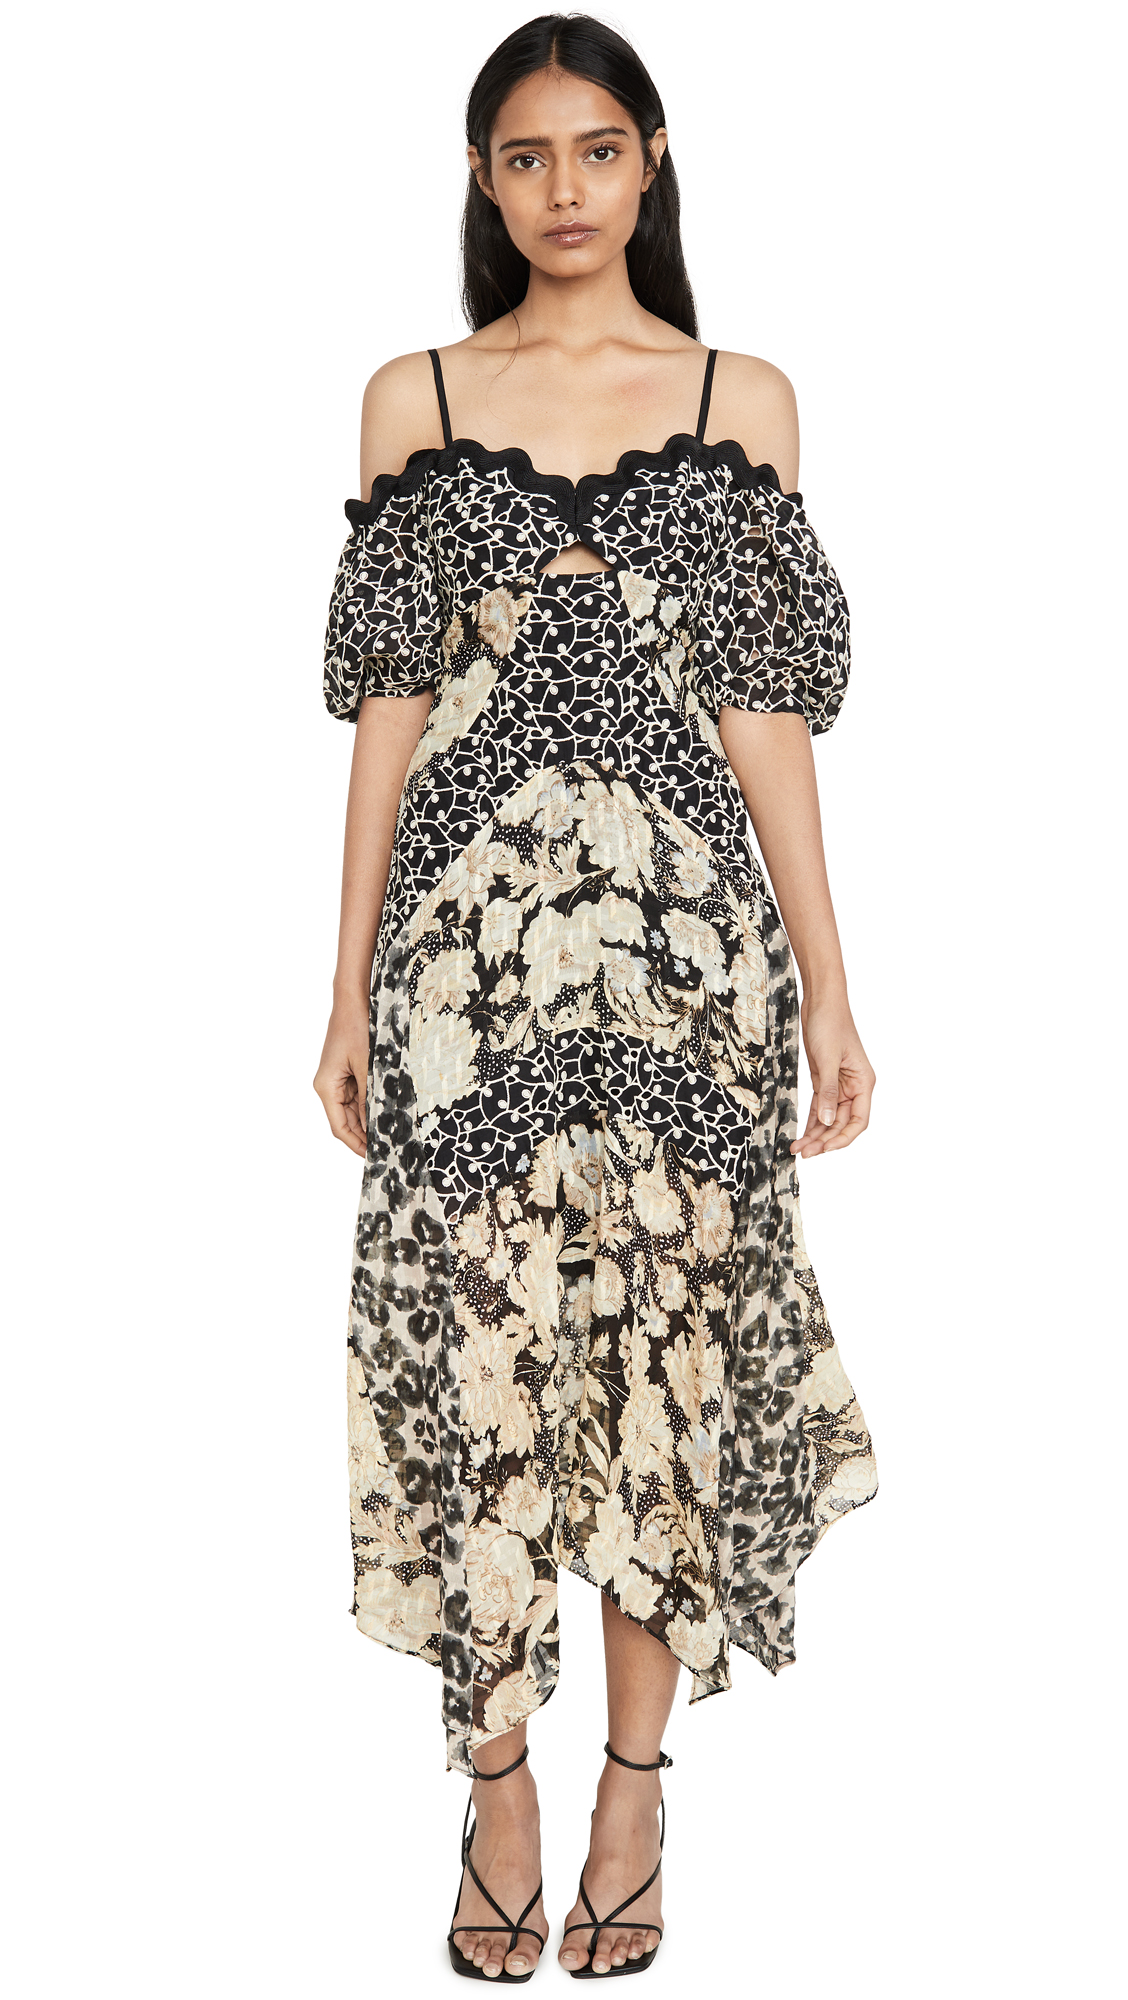 Rebecca Taylor Dresses OFF SHOULDER PRINT MIX DRESS